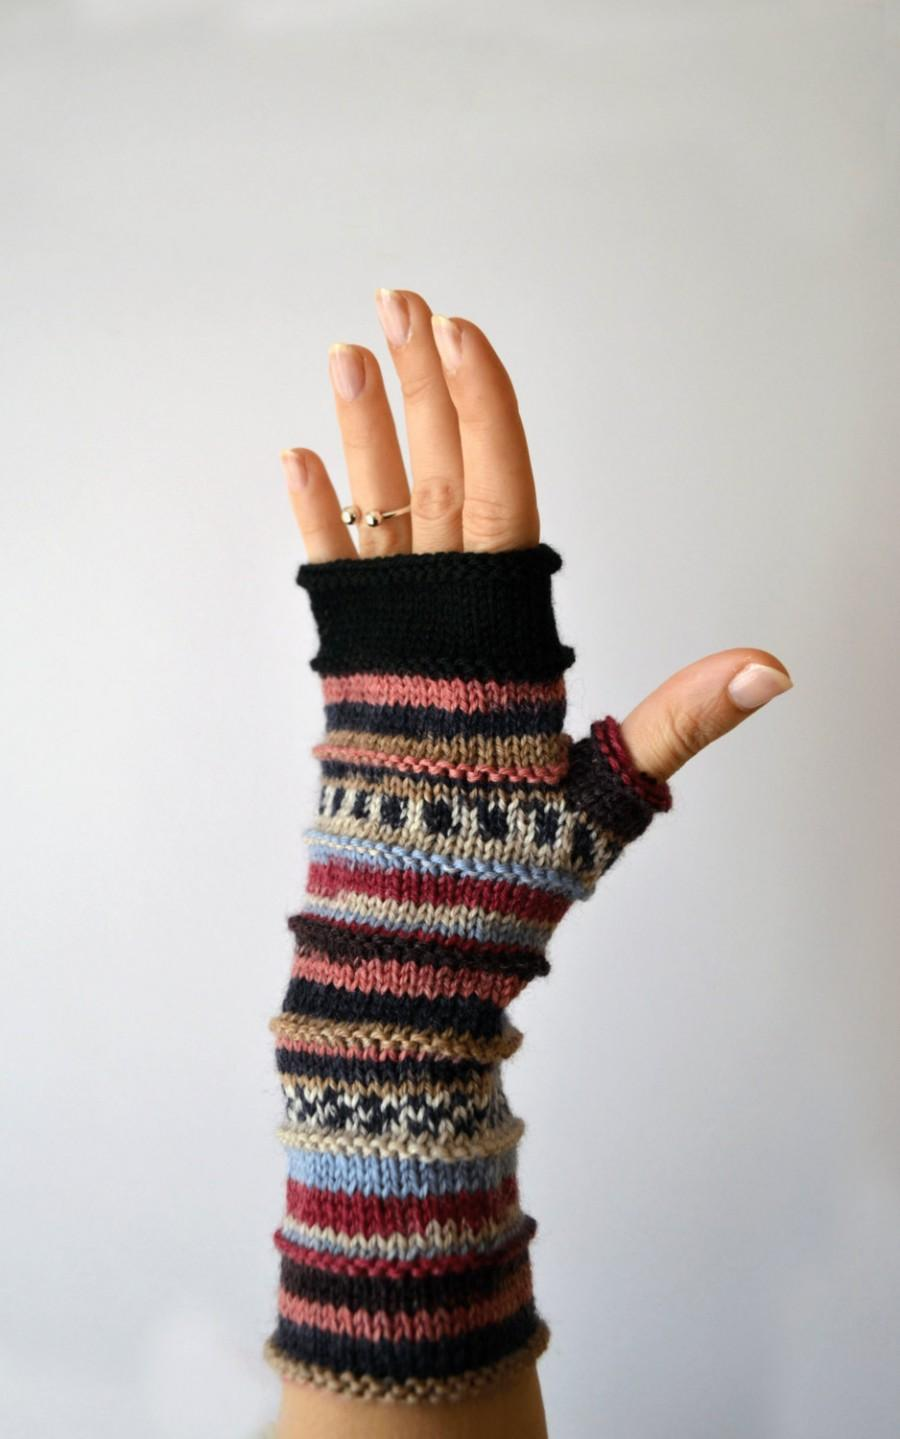 Wedding - Black Friday Sale - Colorful Fingerless Gloves - Christmas Gift - Winter Accessories - Women gloves - Women Fashion nO 73.